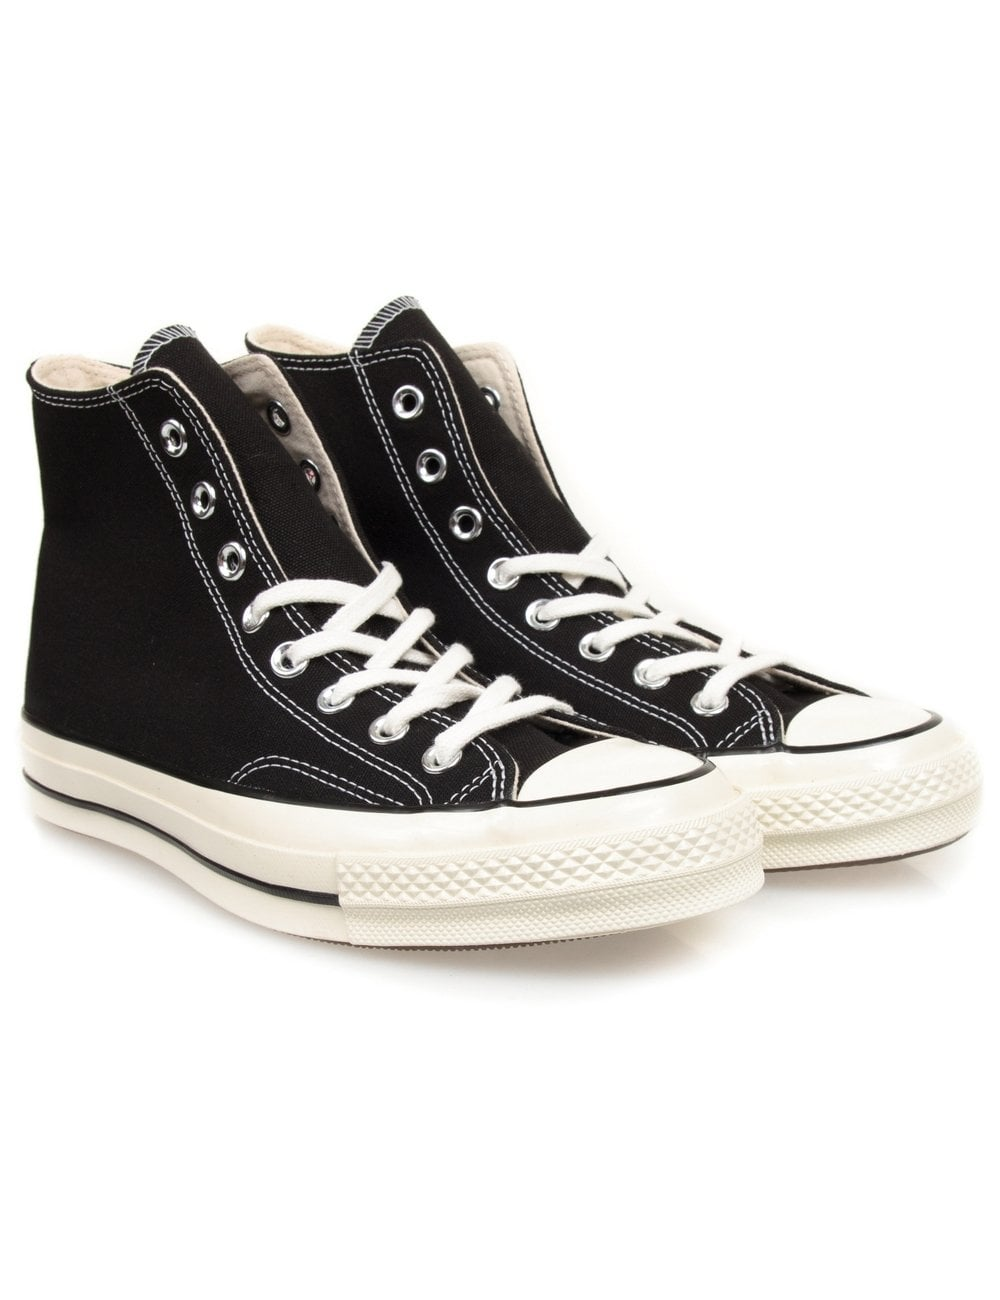 Converse Chuck Taylor 70s Hi Boots - Black - Footwear from Fat ... 085f3ab4a